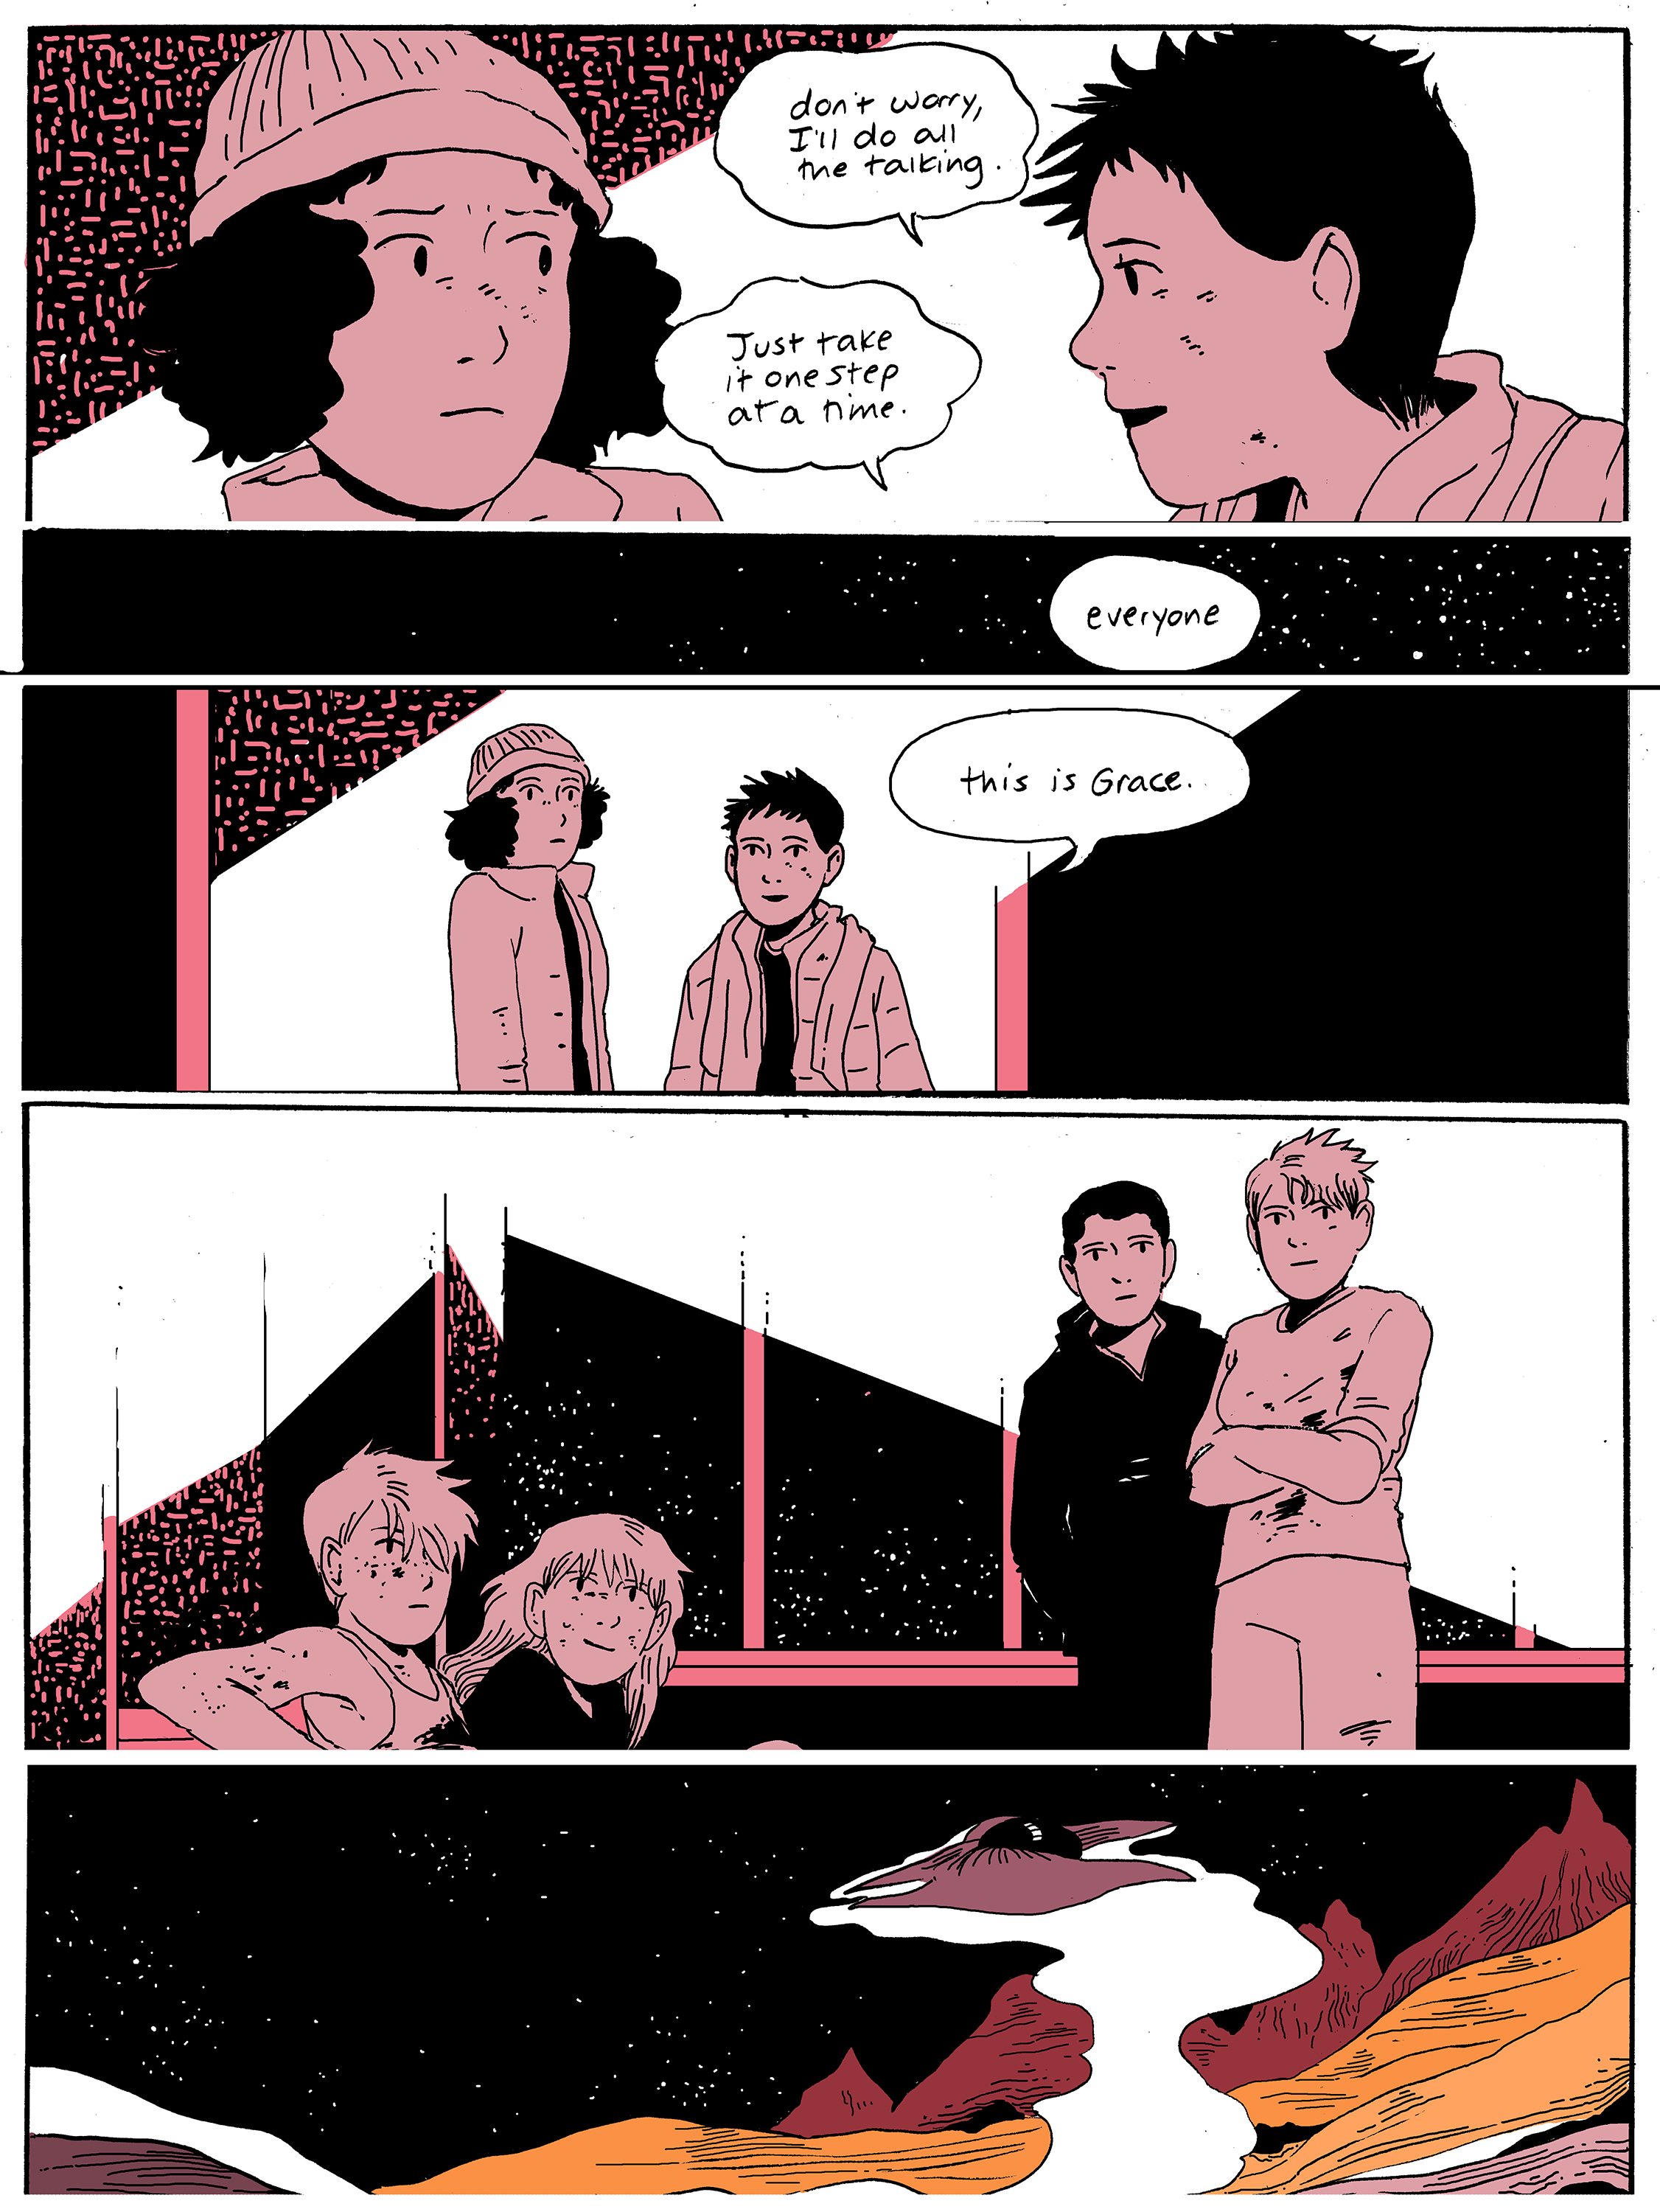 chapter19_page37.jpg